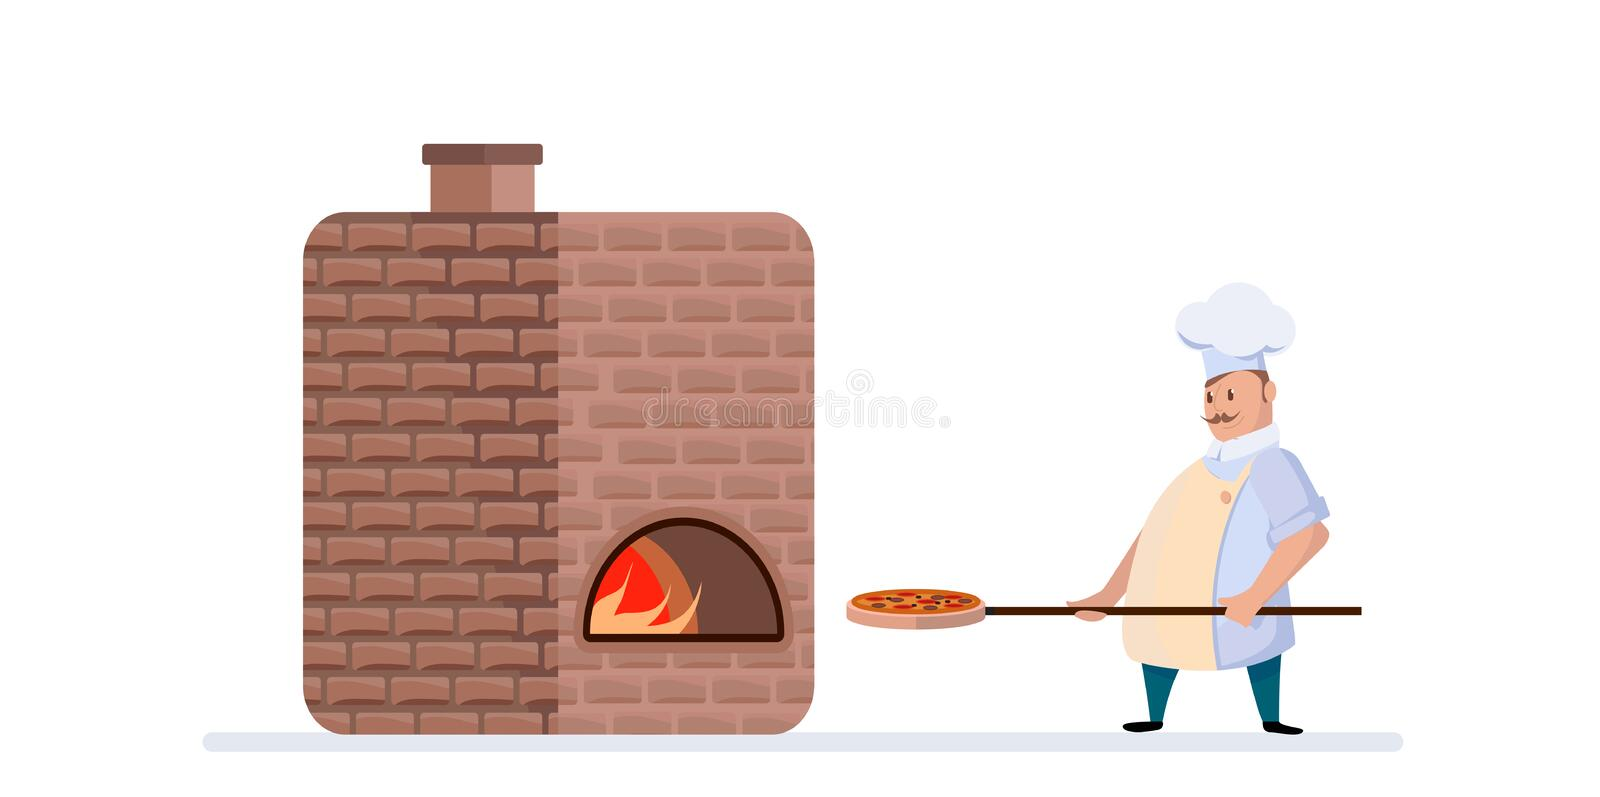 Le chef faisant cuire la pizza dans grand font cuire au four Illustrations de vecteur dans le style de bande dessin?e illustration stock